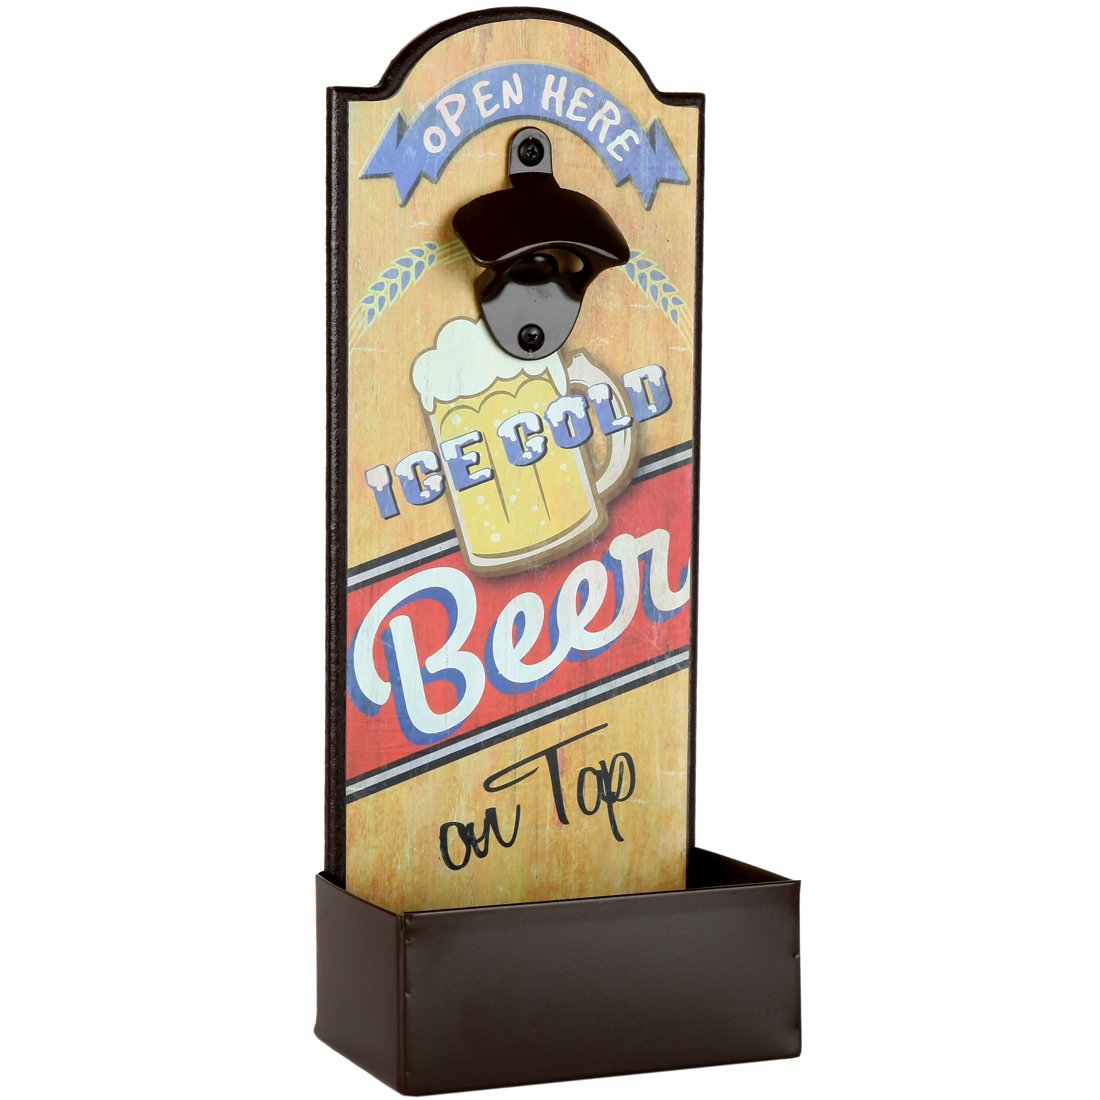 Lily's Home Vintage-Style Beer Bottle Cap Opener With Cap Catcher, Features Ice Cold Beer on Tap Saying, Ideal Father's Day Gift, Use as Man Cave or Bar Decoration (14.25'' L x 5.5'' W x 3.75'' D)